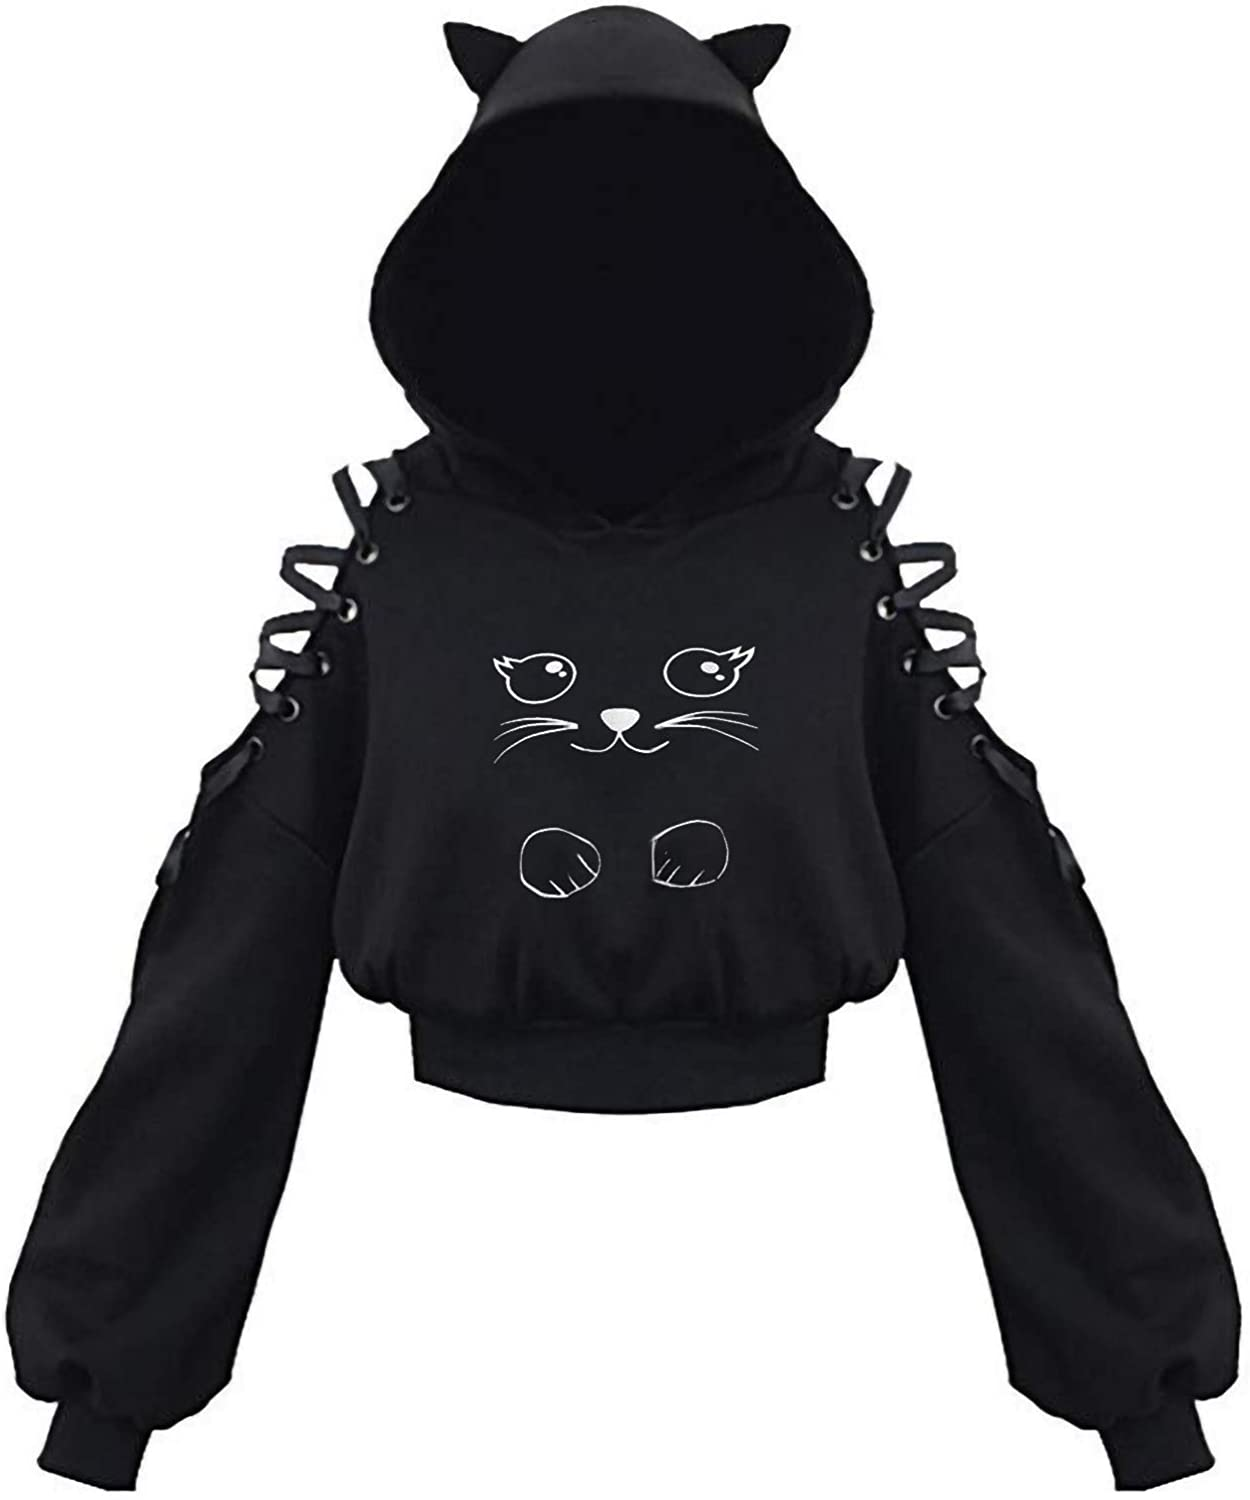 Nulairt Women's Hoodie Cat Ear Crop Top Hooded Sweatshirt Hollow Out Lace Up Pullover Hoodies for Teen Girls